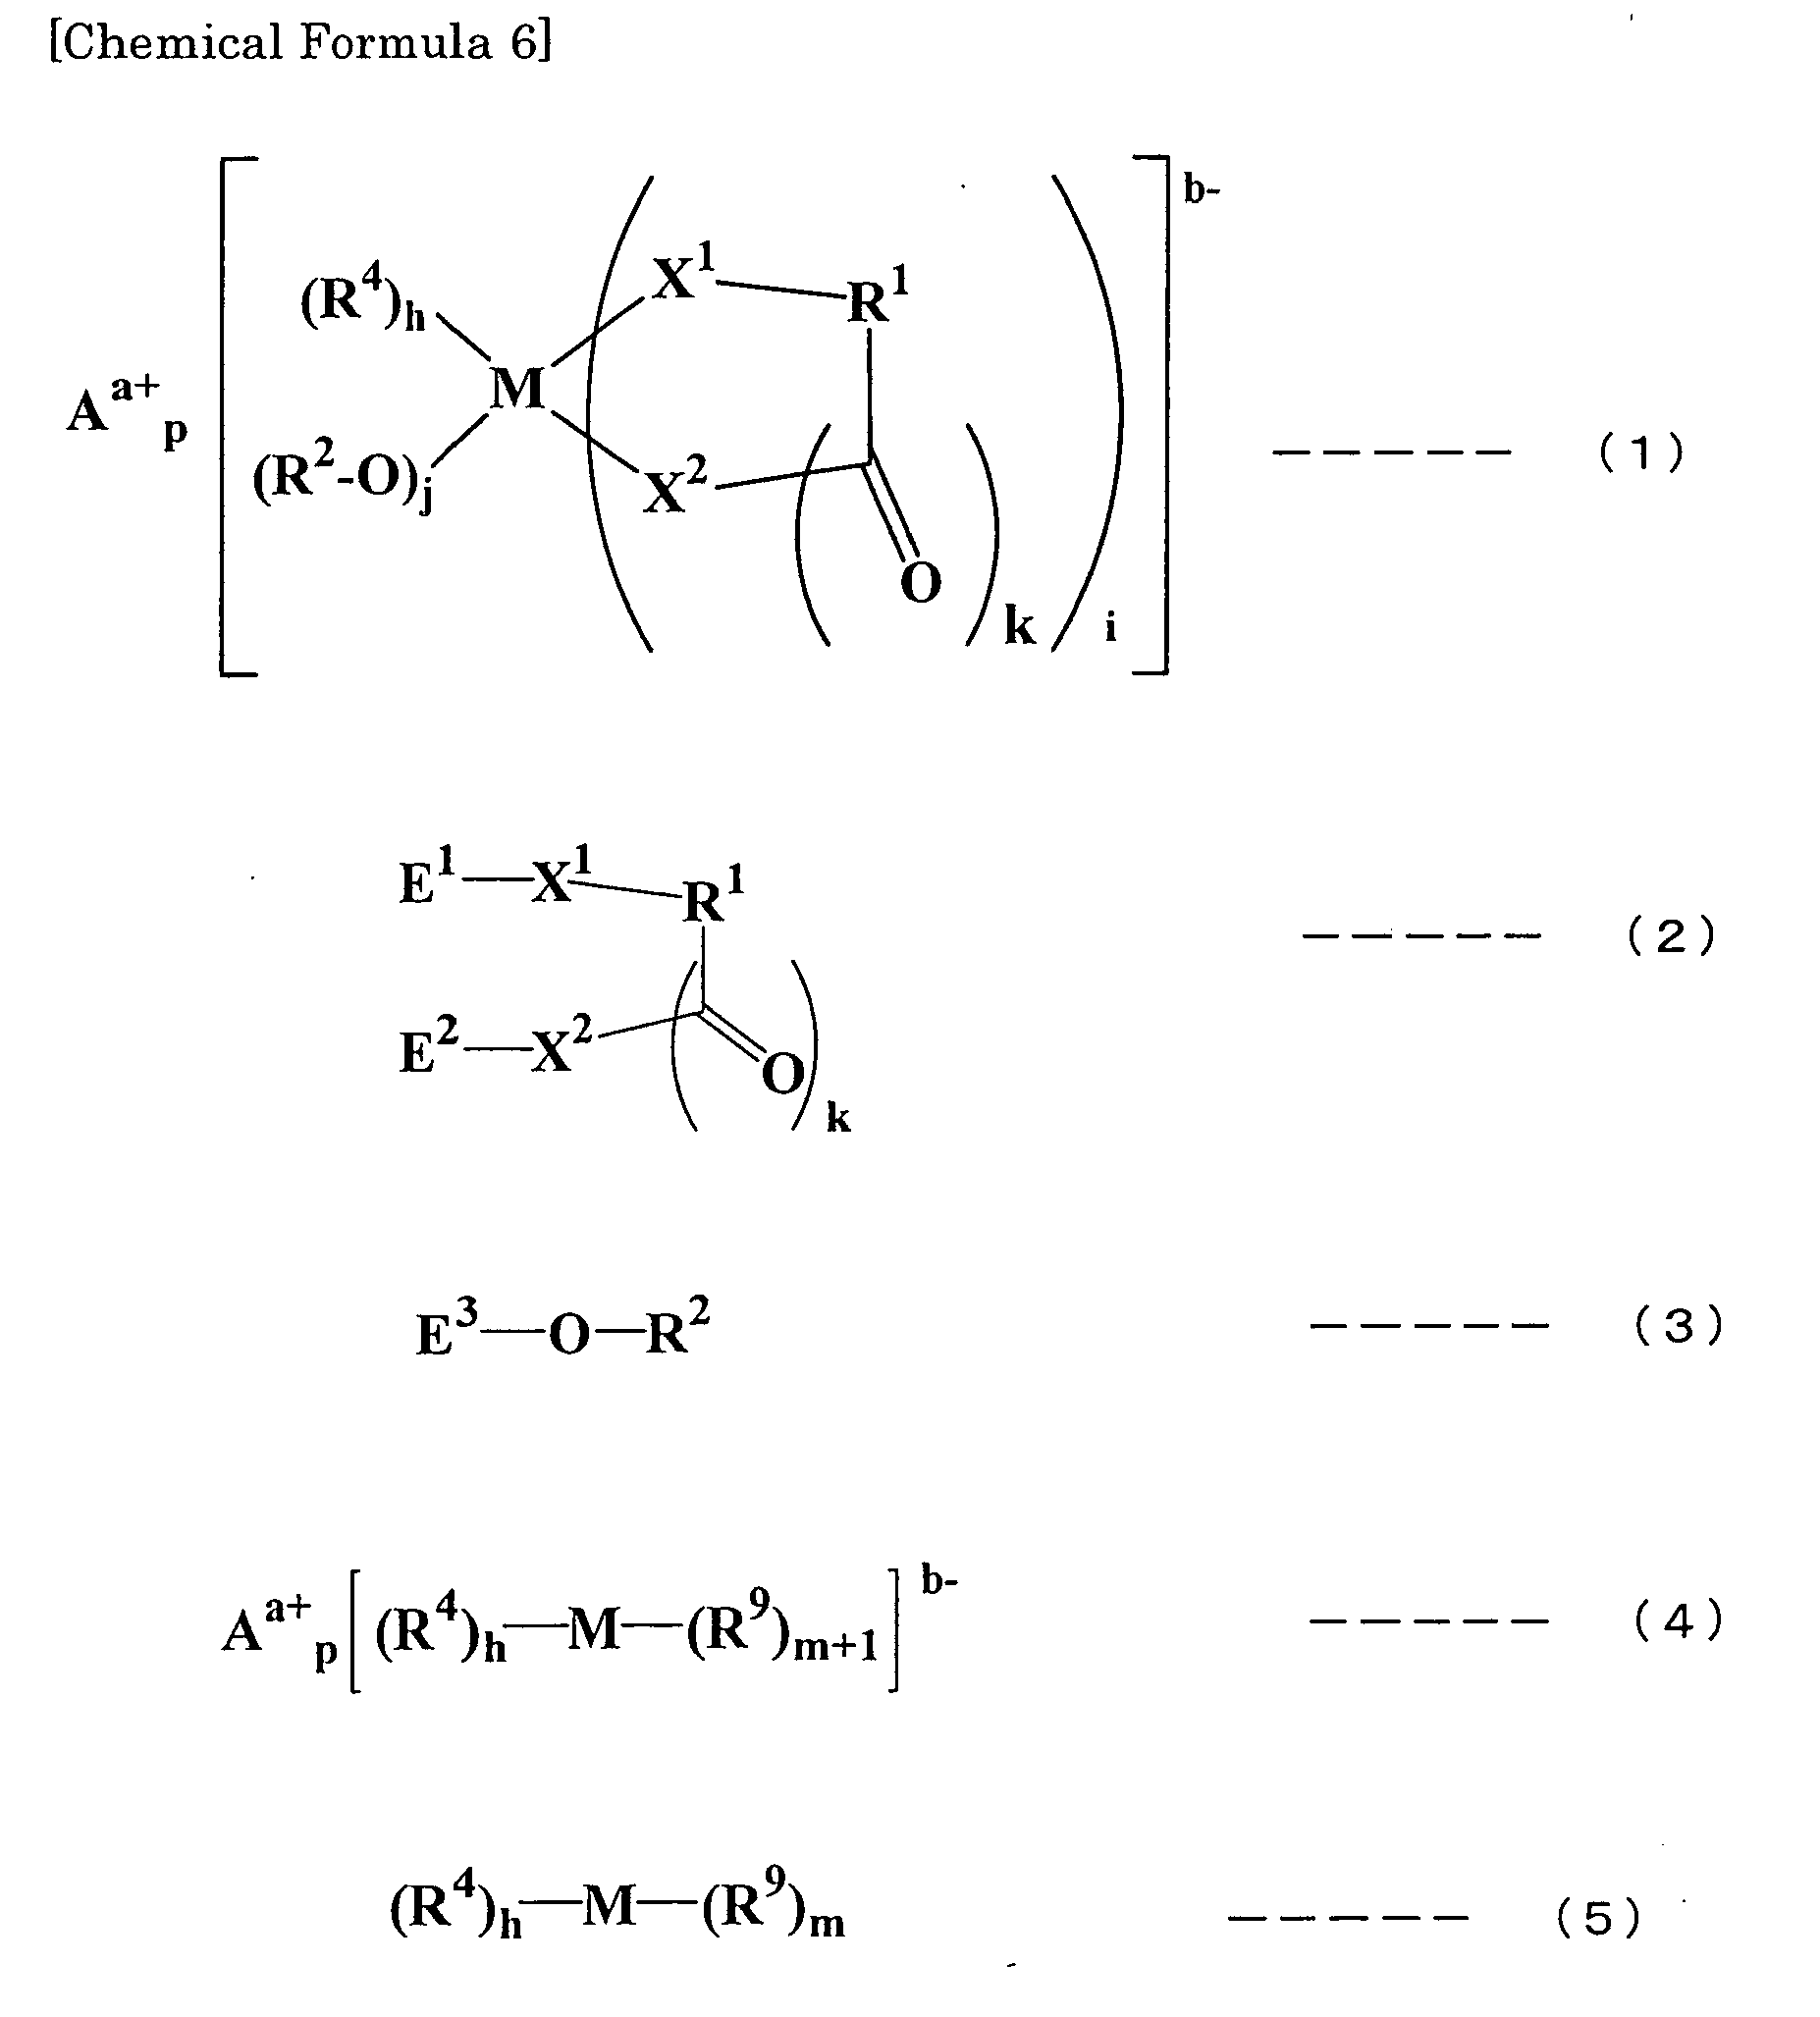 Patent ep1842853a1 method for synthesizing ionic complex wherein m represents a transition metal or an element of group 13 group 14 or group 15 of the periodic table aa represents a metal ion hydrogen ion gamestrikefo Image collections